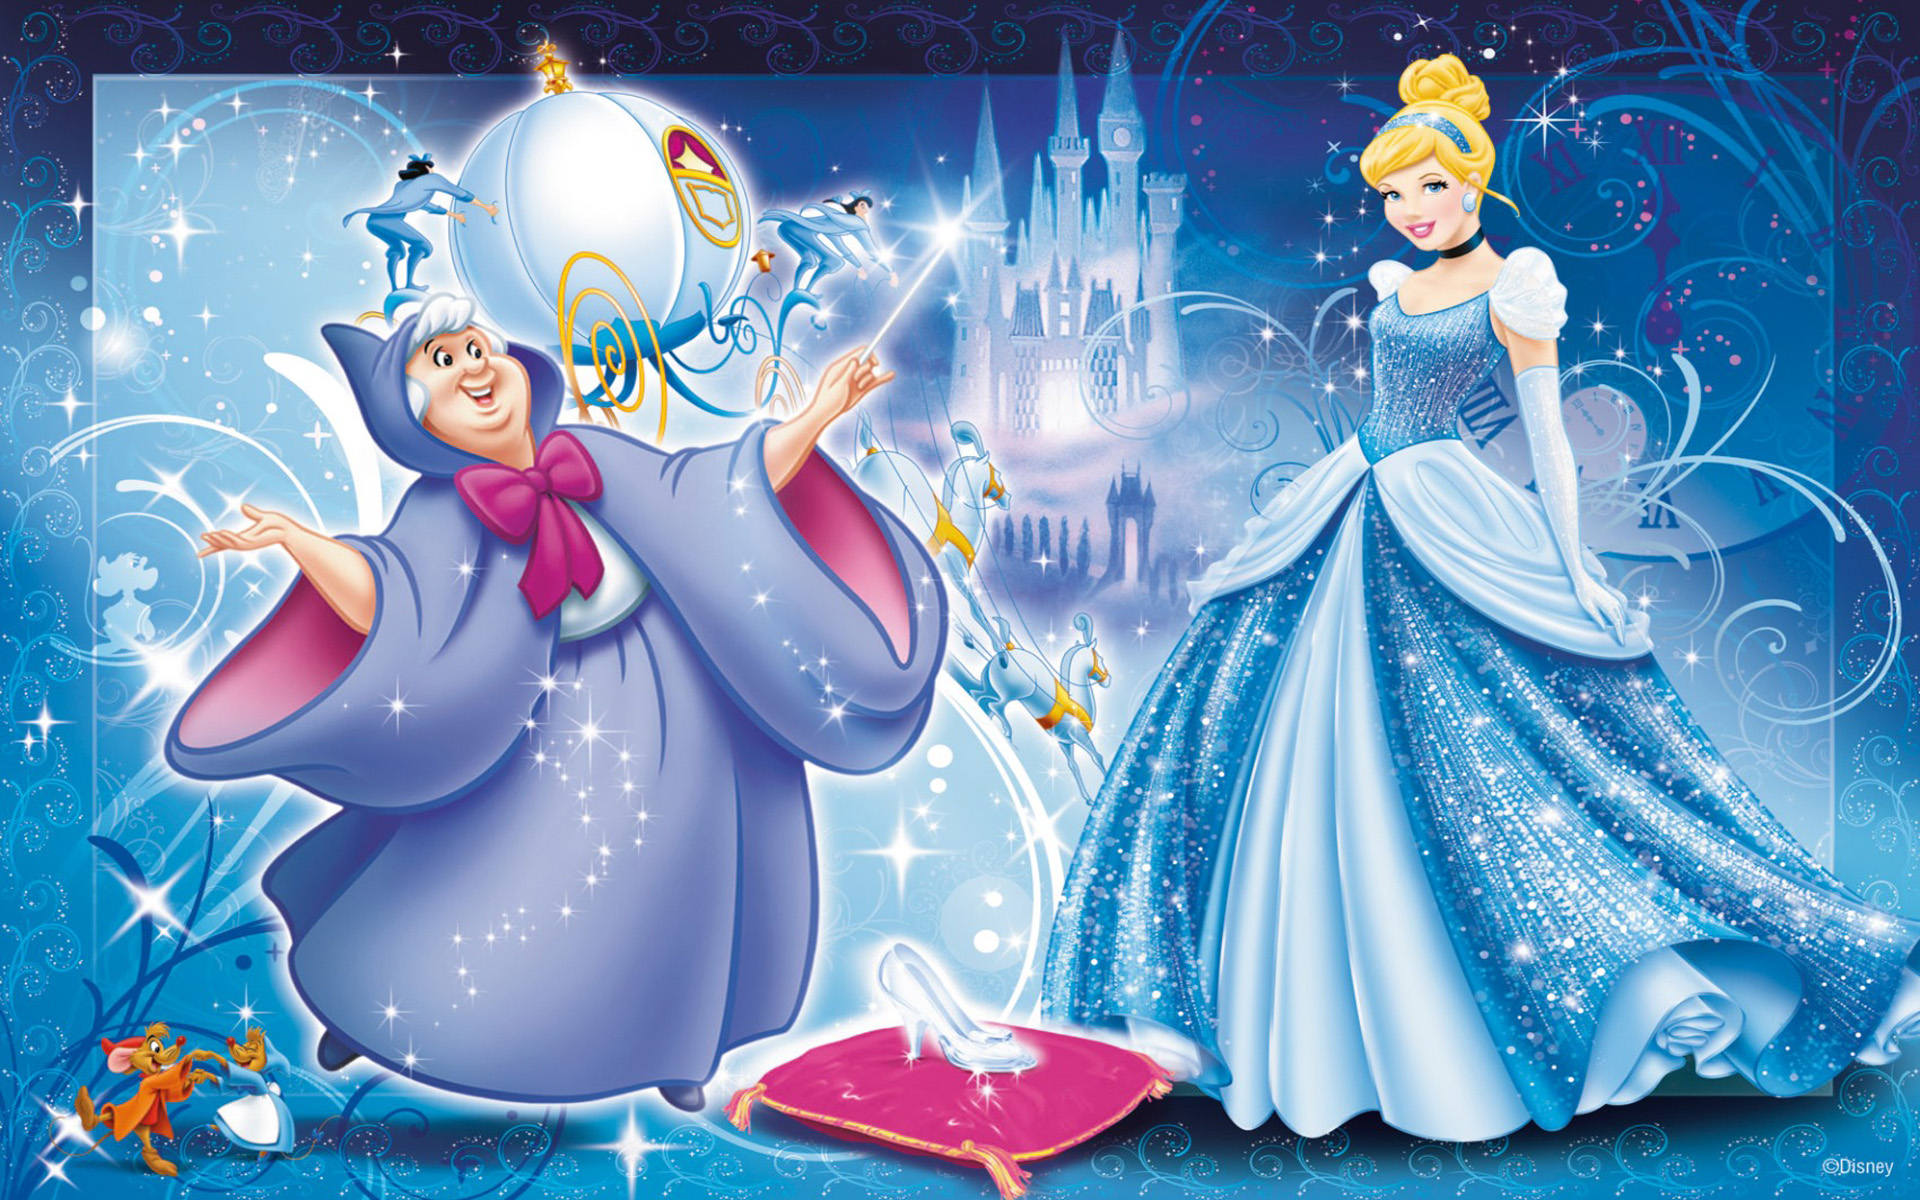 fairy godmother bows magical shoes on cinderella photo wallpapers hd 1920x1200 wallpapers13 com